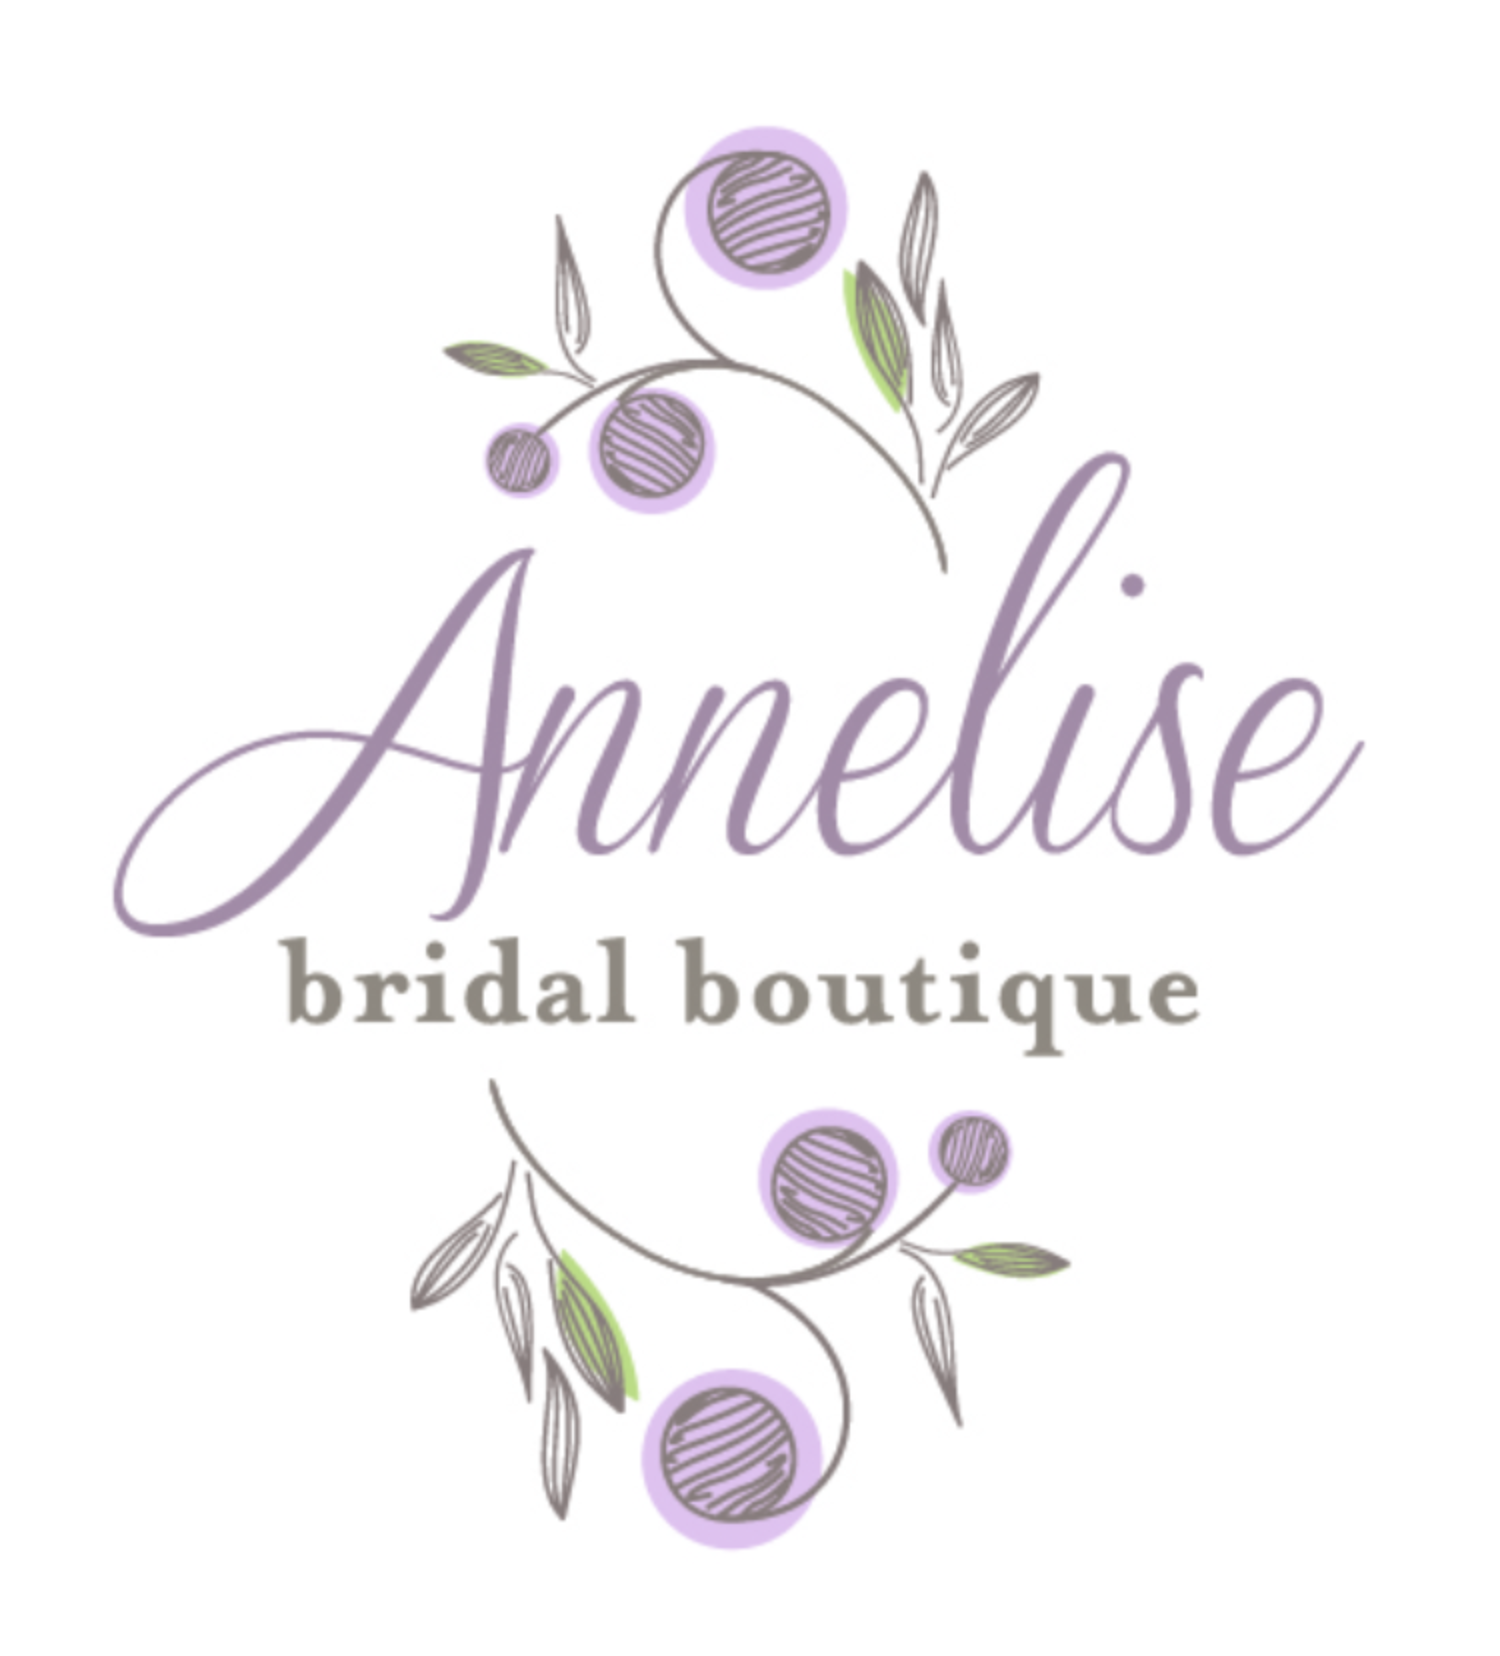 Annelise Bridal Boutique